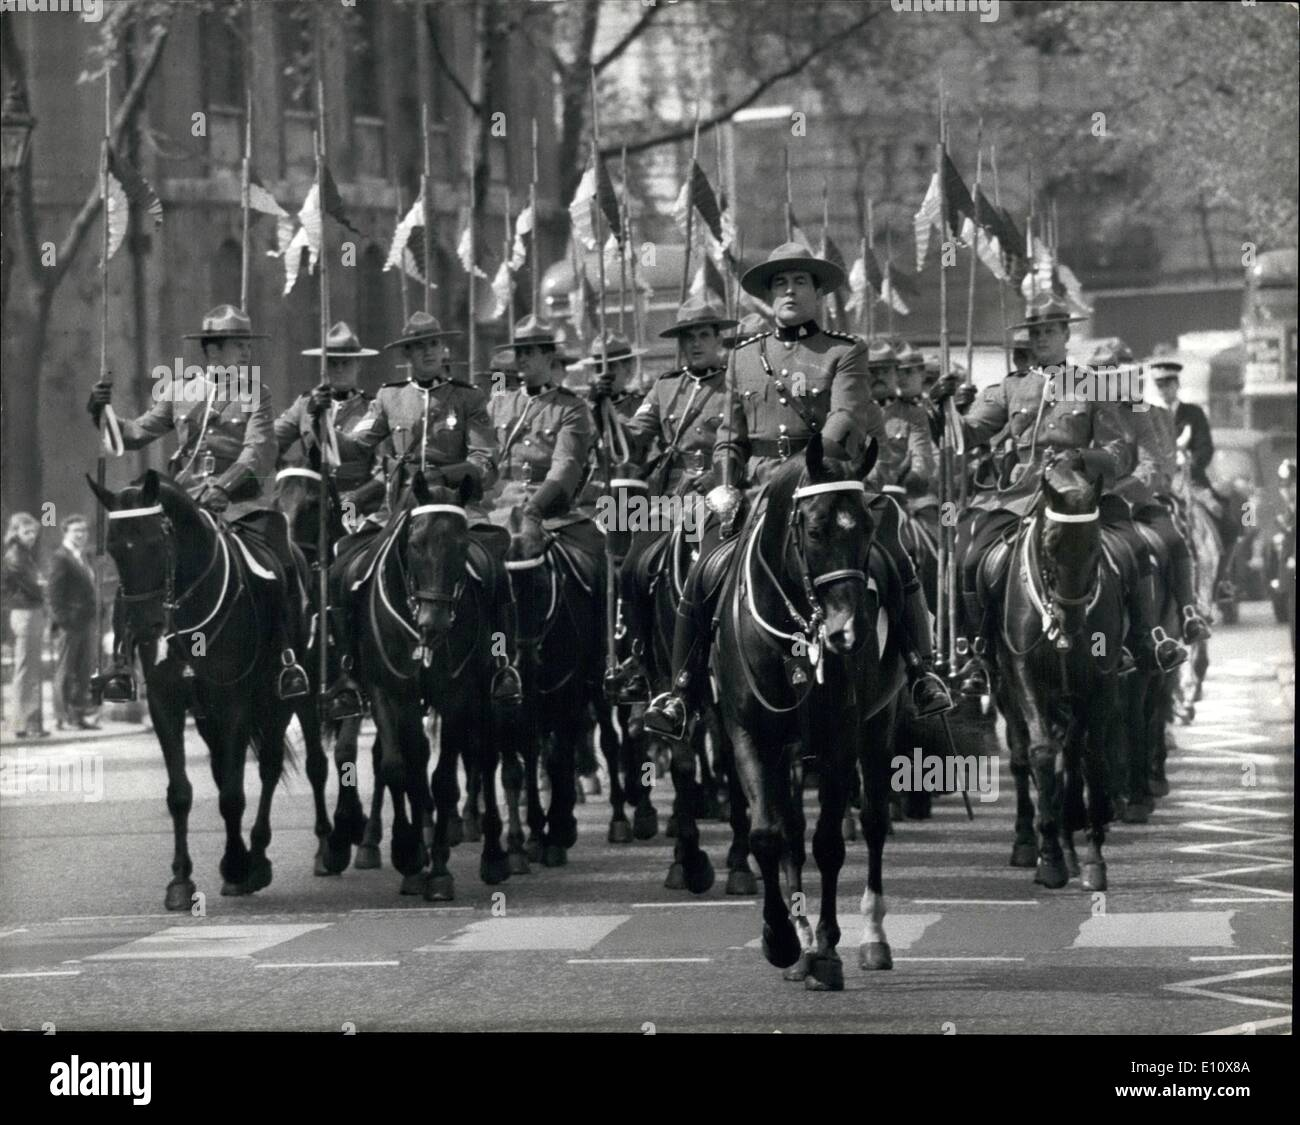 May 05, 1974 - Royal Canadian Mounted Police visit the city: A detachment of the Royal Canadian Mounted Police today visited the City of London, and at the Mansion House they were inspected by the Lord Mayor of London, Sir Hugh Wontner, who afterwards received them inside the Mansion House. Photo shows the detachment of Royal Canadian Mounted Police, pictured at Temple Bar on their way to the city of London today. - Stock Image